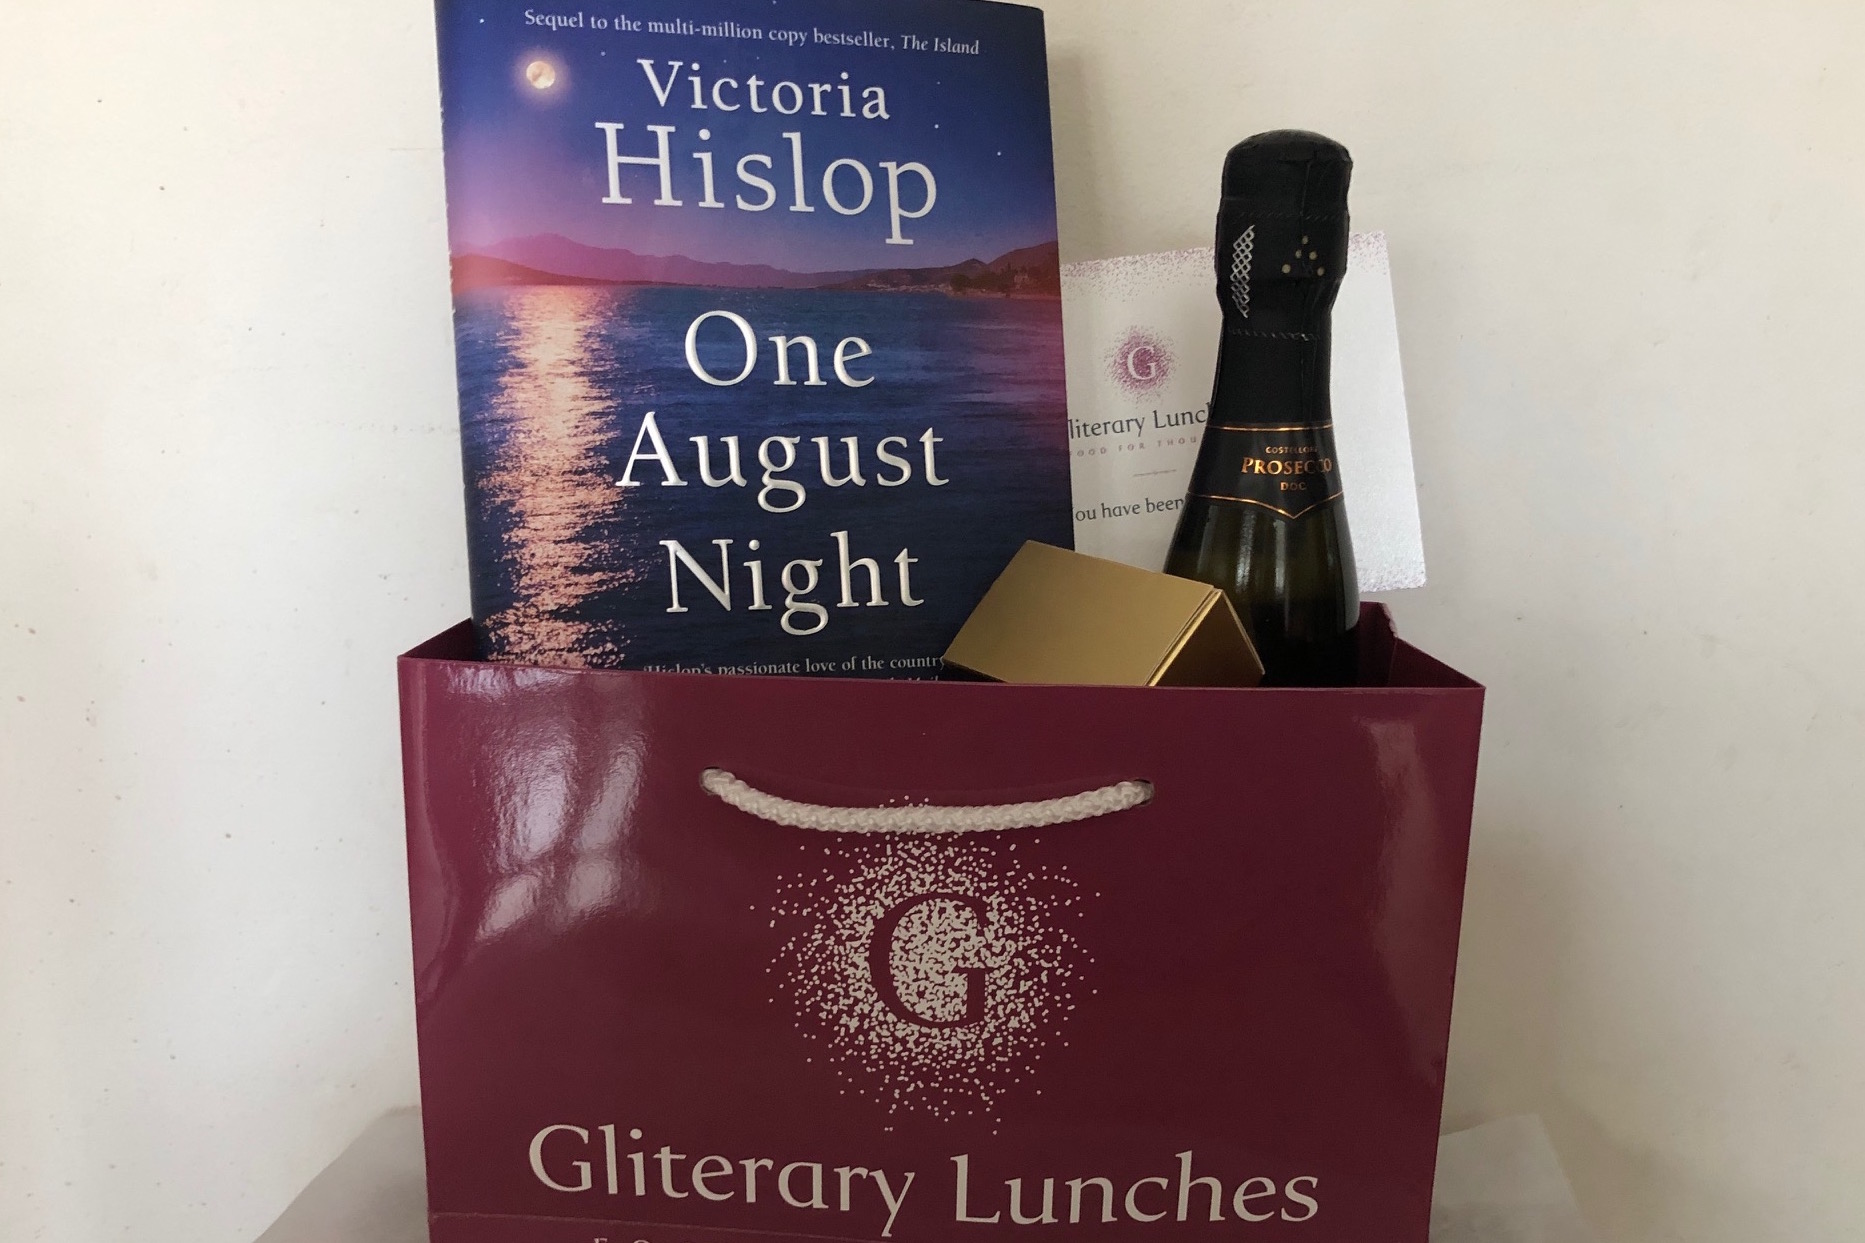 Victoria Hislop Event, VIP Gift Package